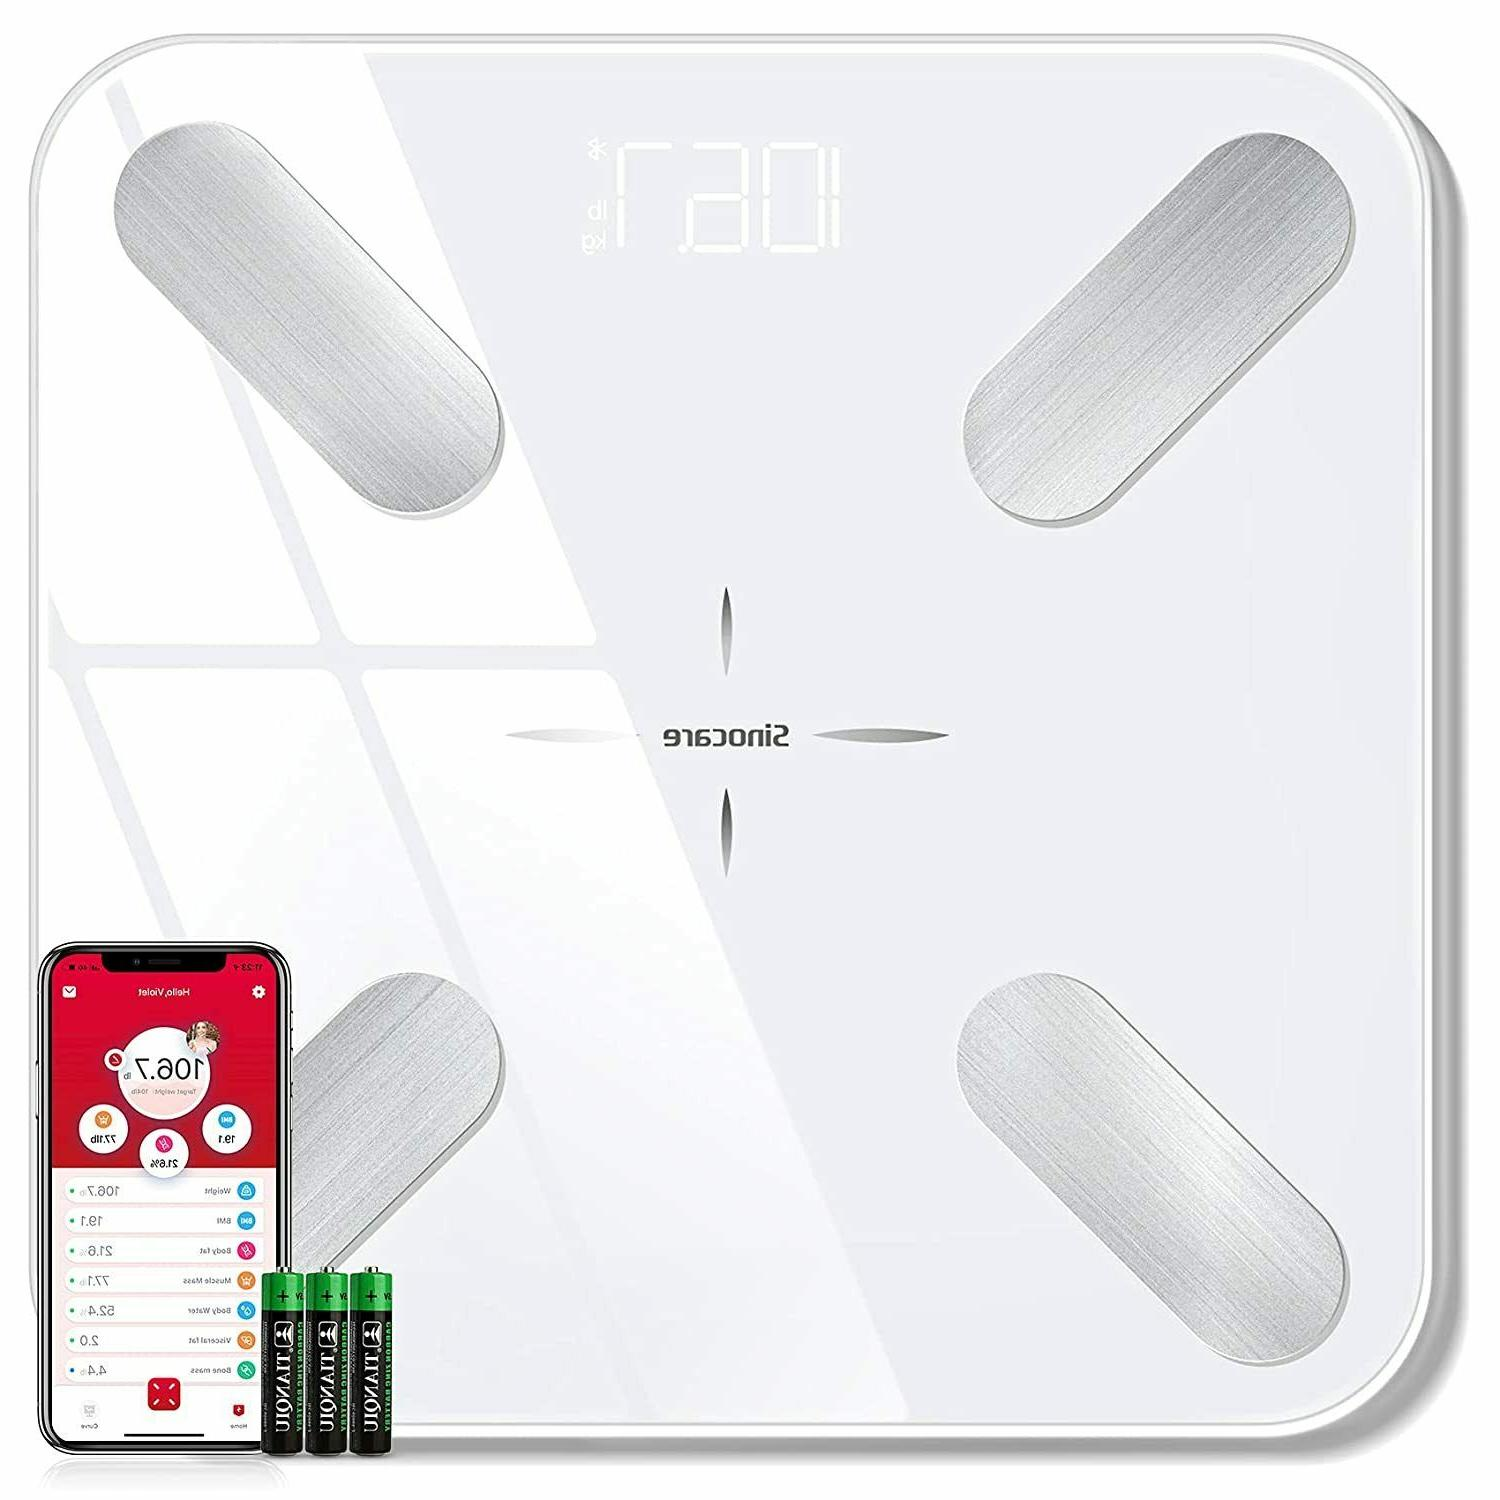 scalefocipow fat monitor analyzer